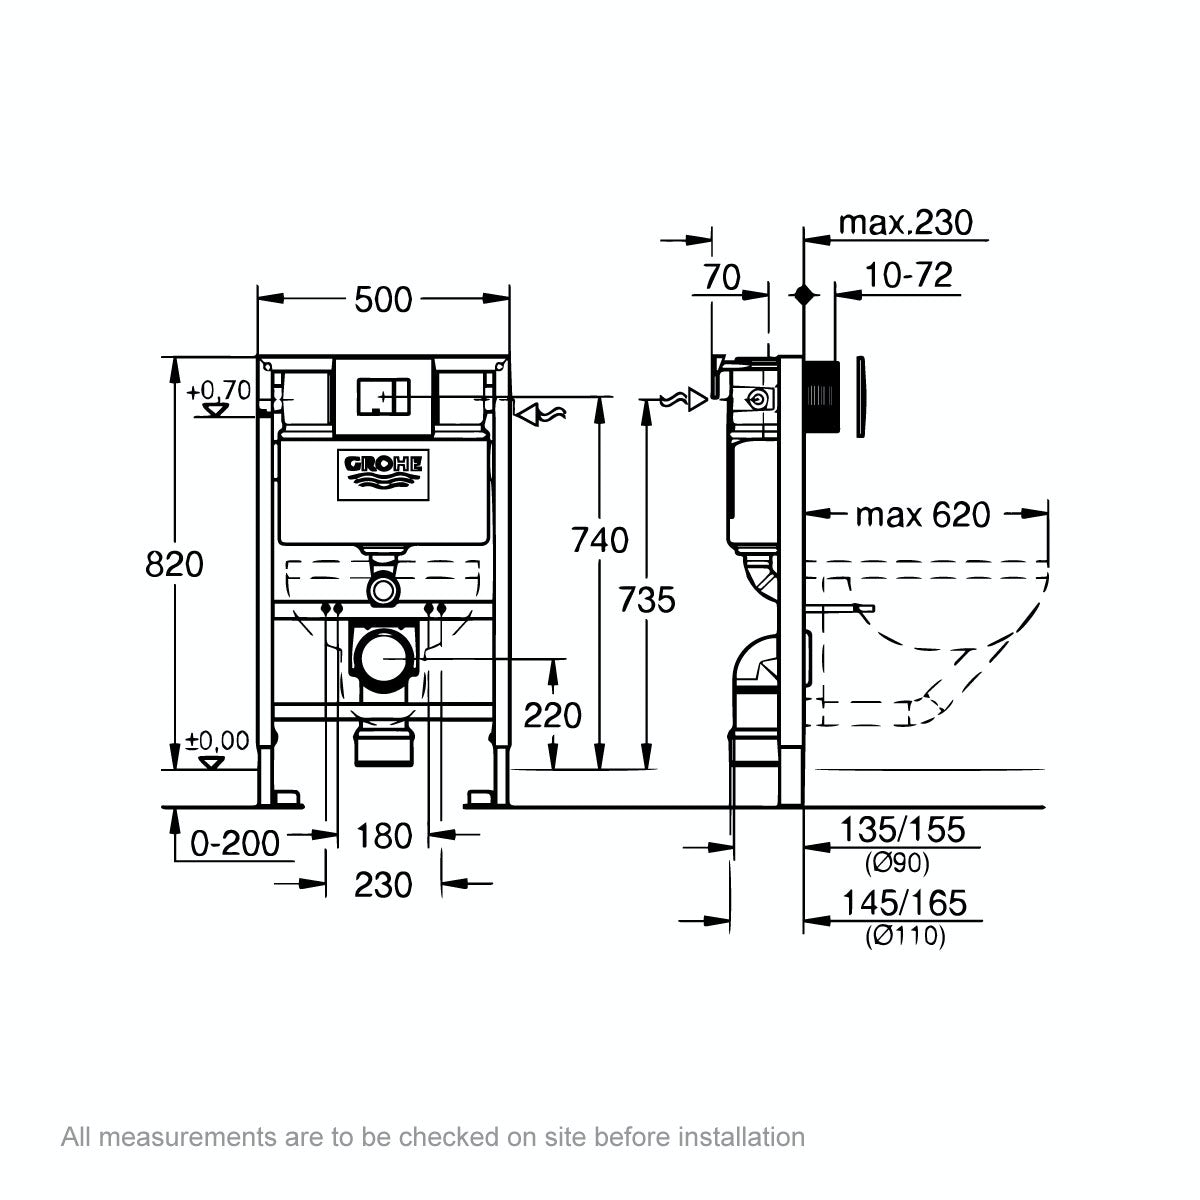 Dimensions for Grohe Rapid SL Set 3 in 1 wall mounting frame with square button Skate Cosmopolitan push plate 0.82m